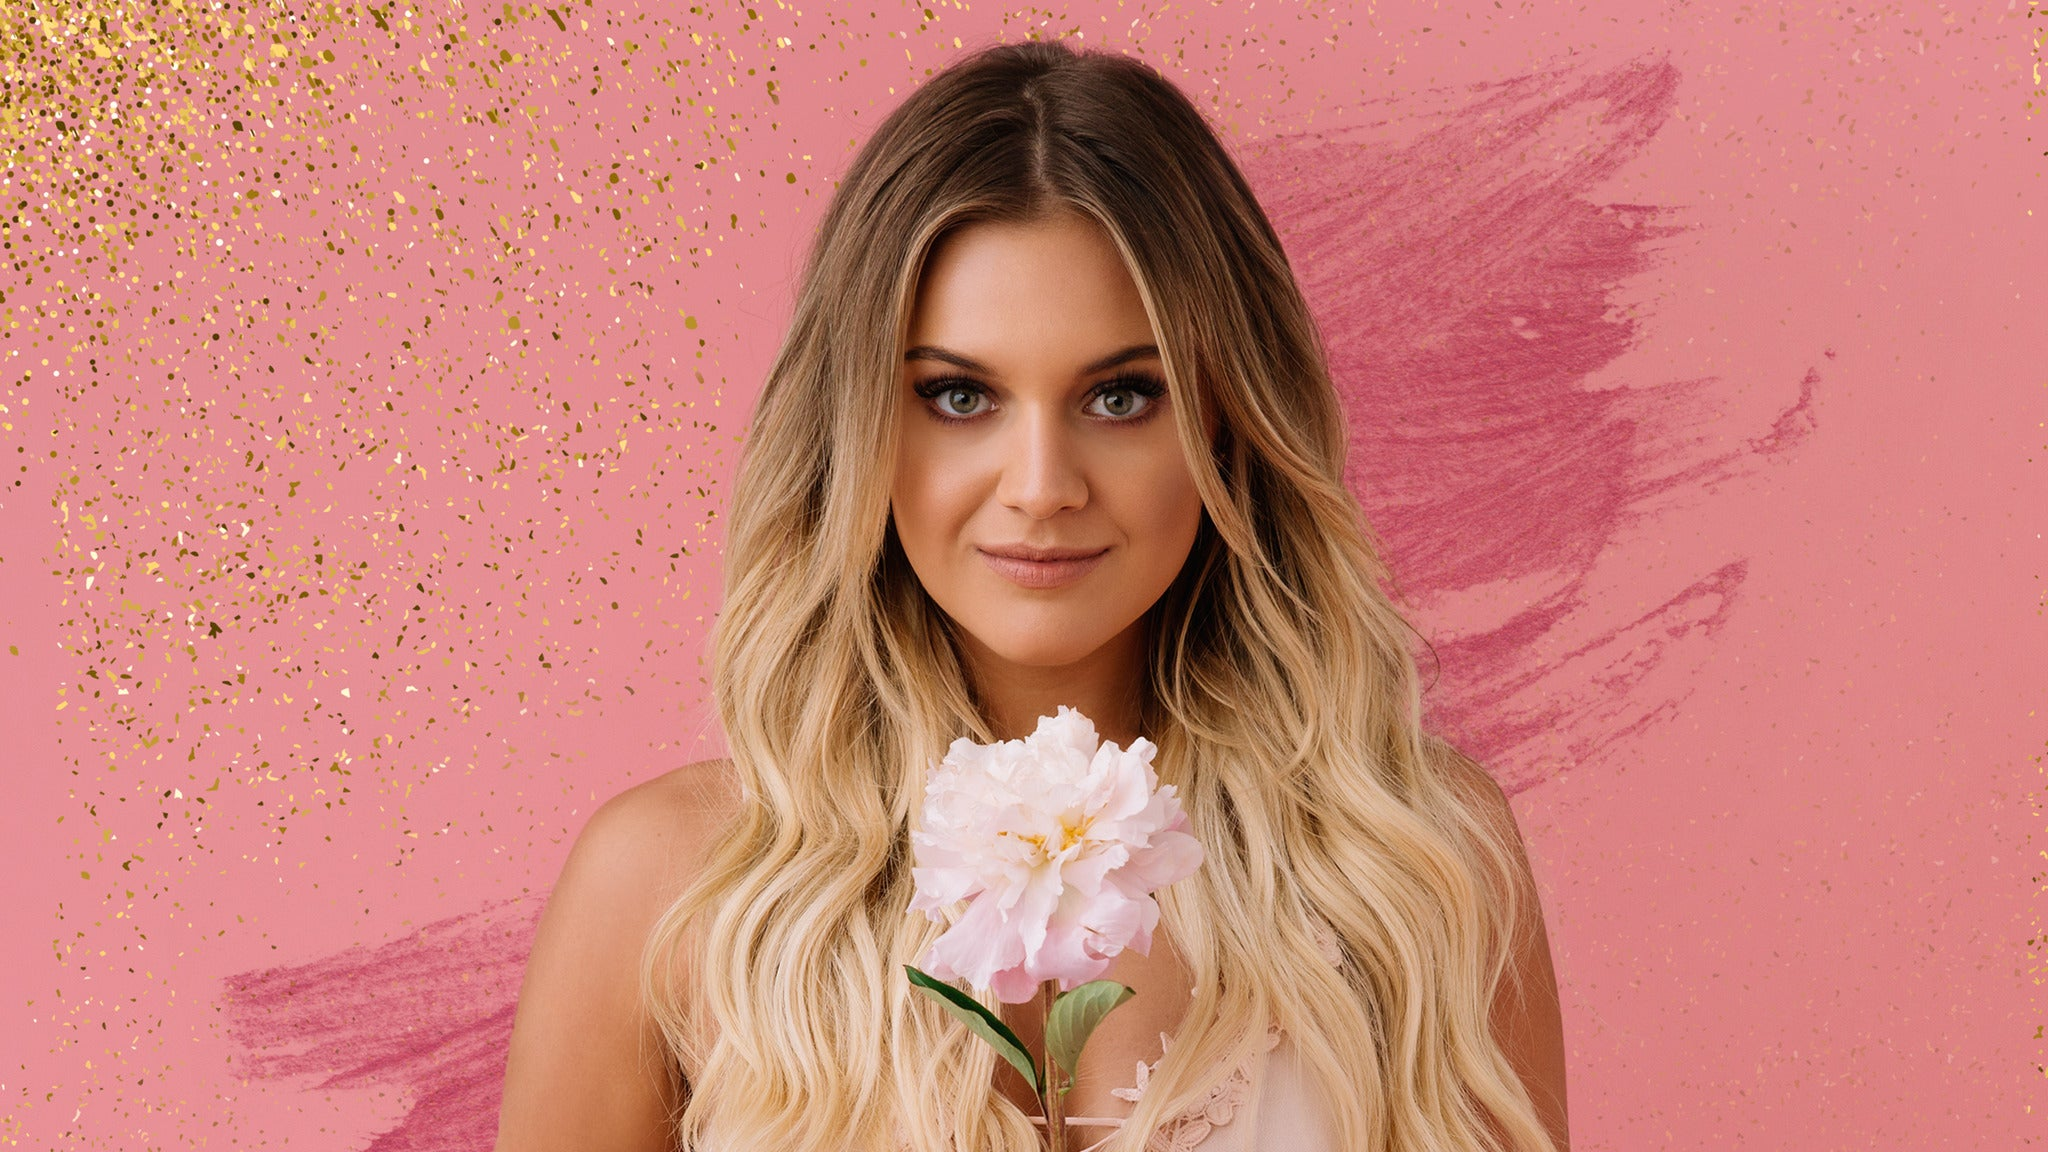 Kelsea Ballerini at Wicomico Civic Center